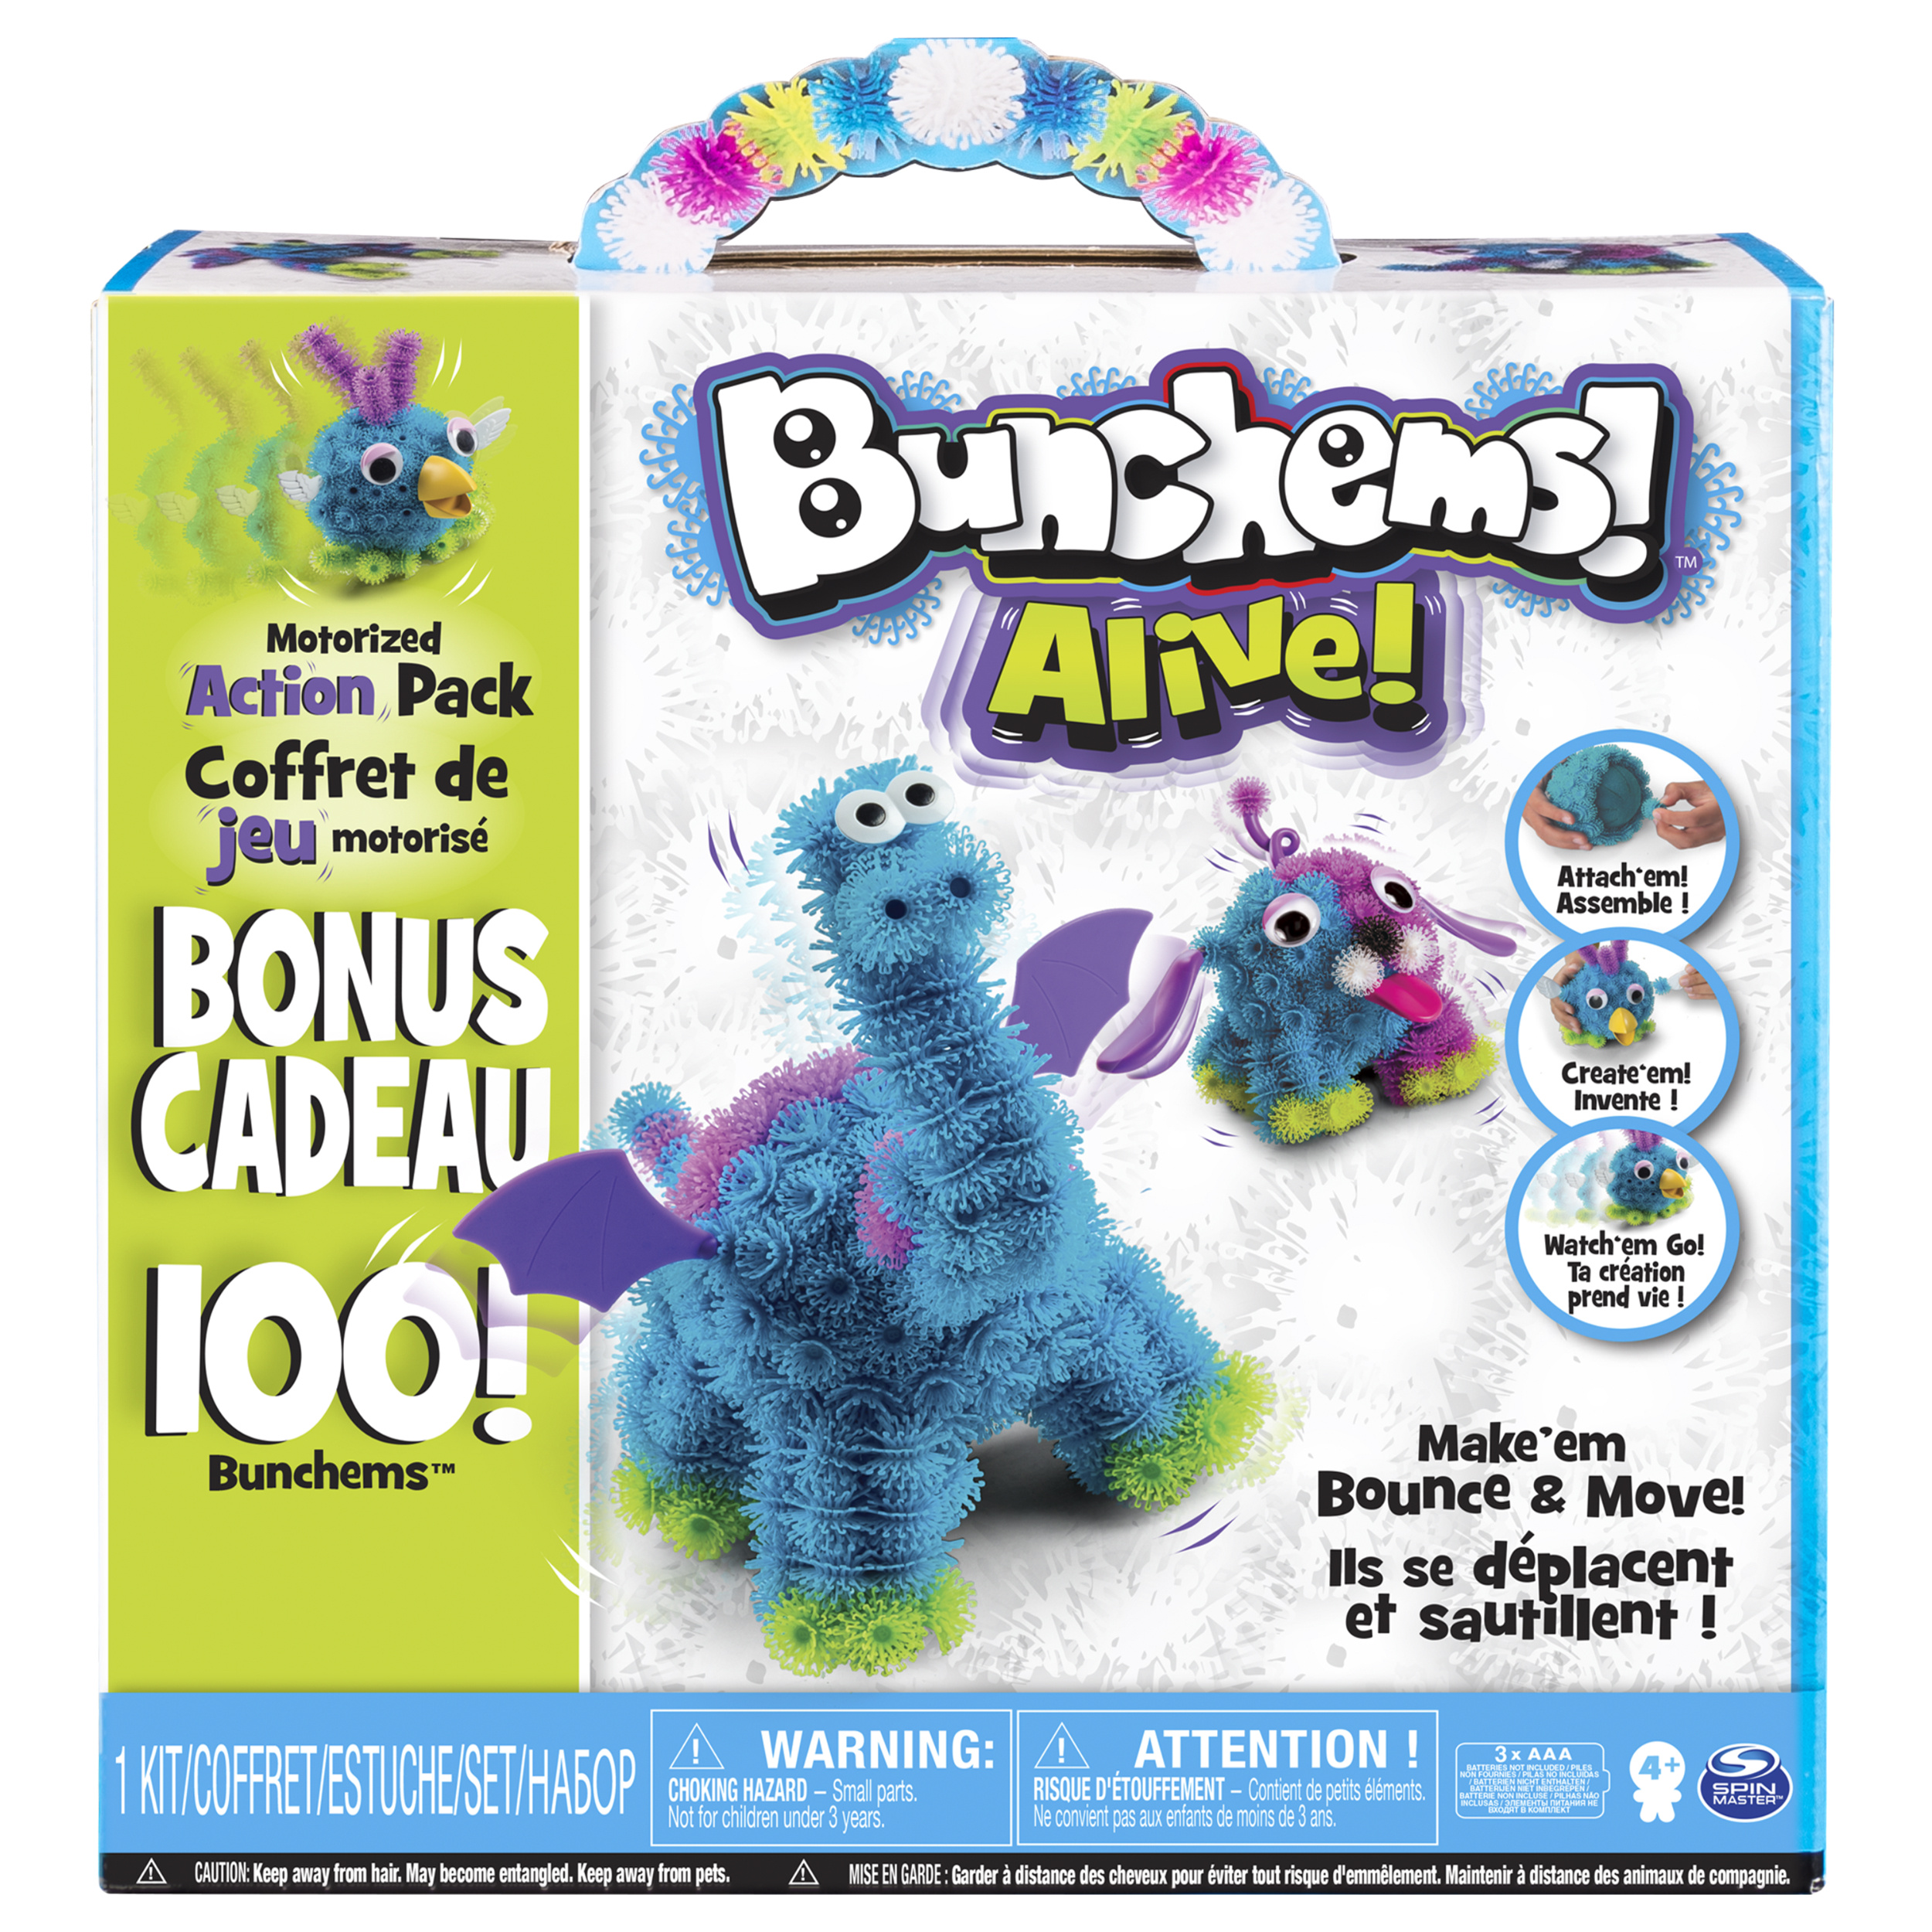 Bunchems Alive, Motorized Action Pack with 100 Bonus Bunchems, Walmart Exclusive, by Spin Master 20081030